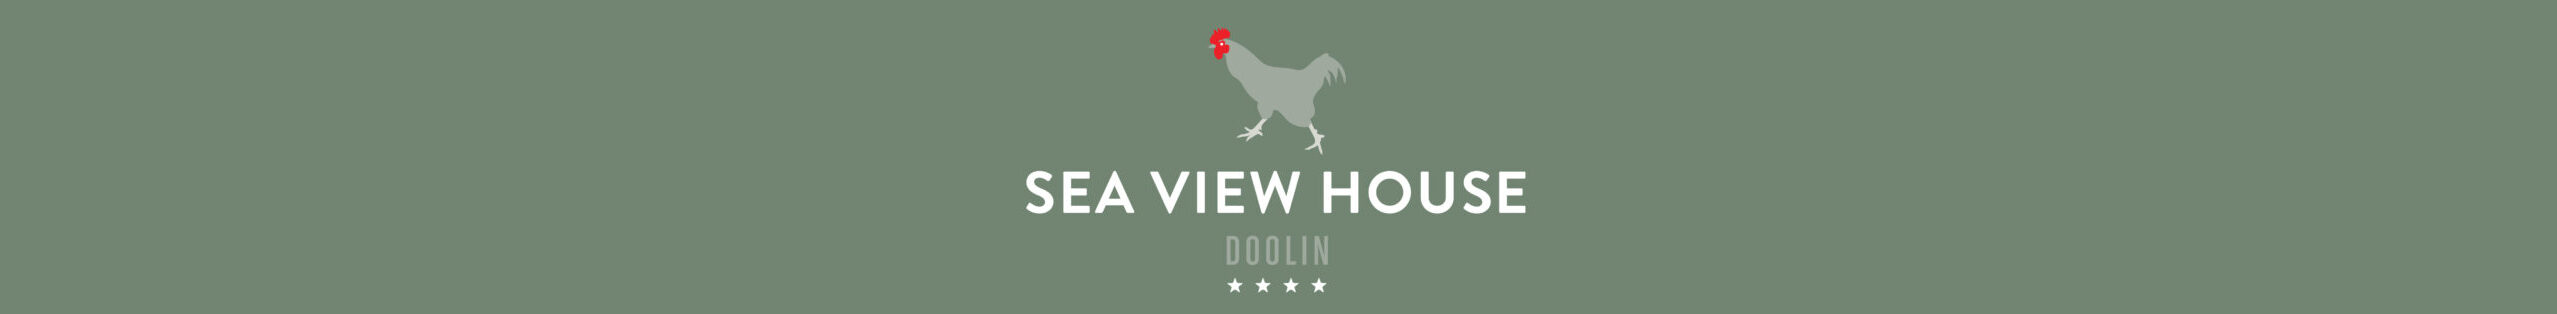 Sea View House Doolin Blog